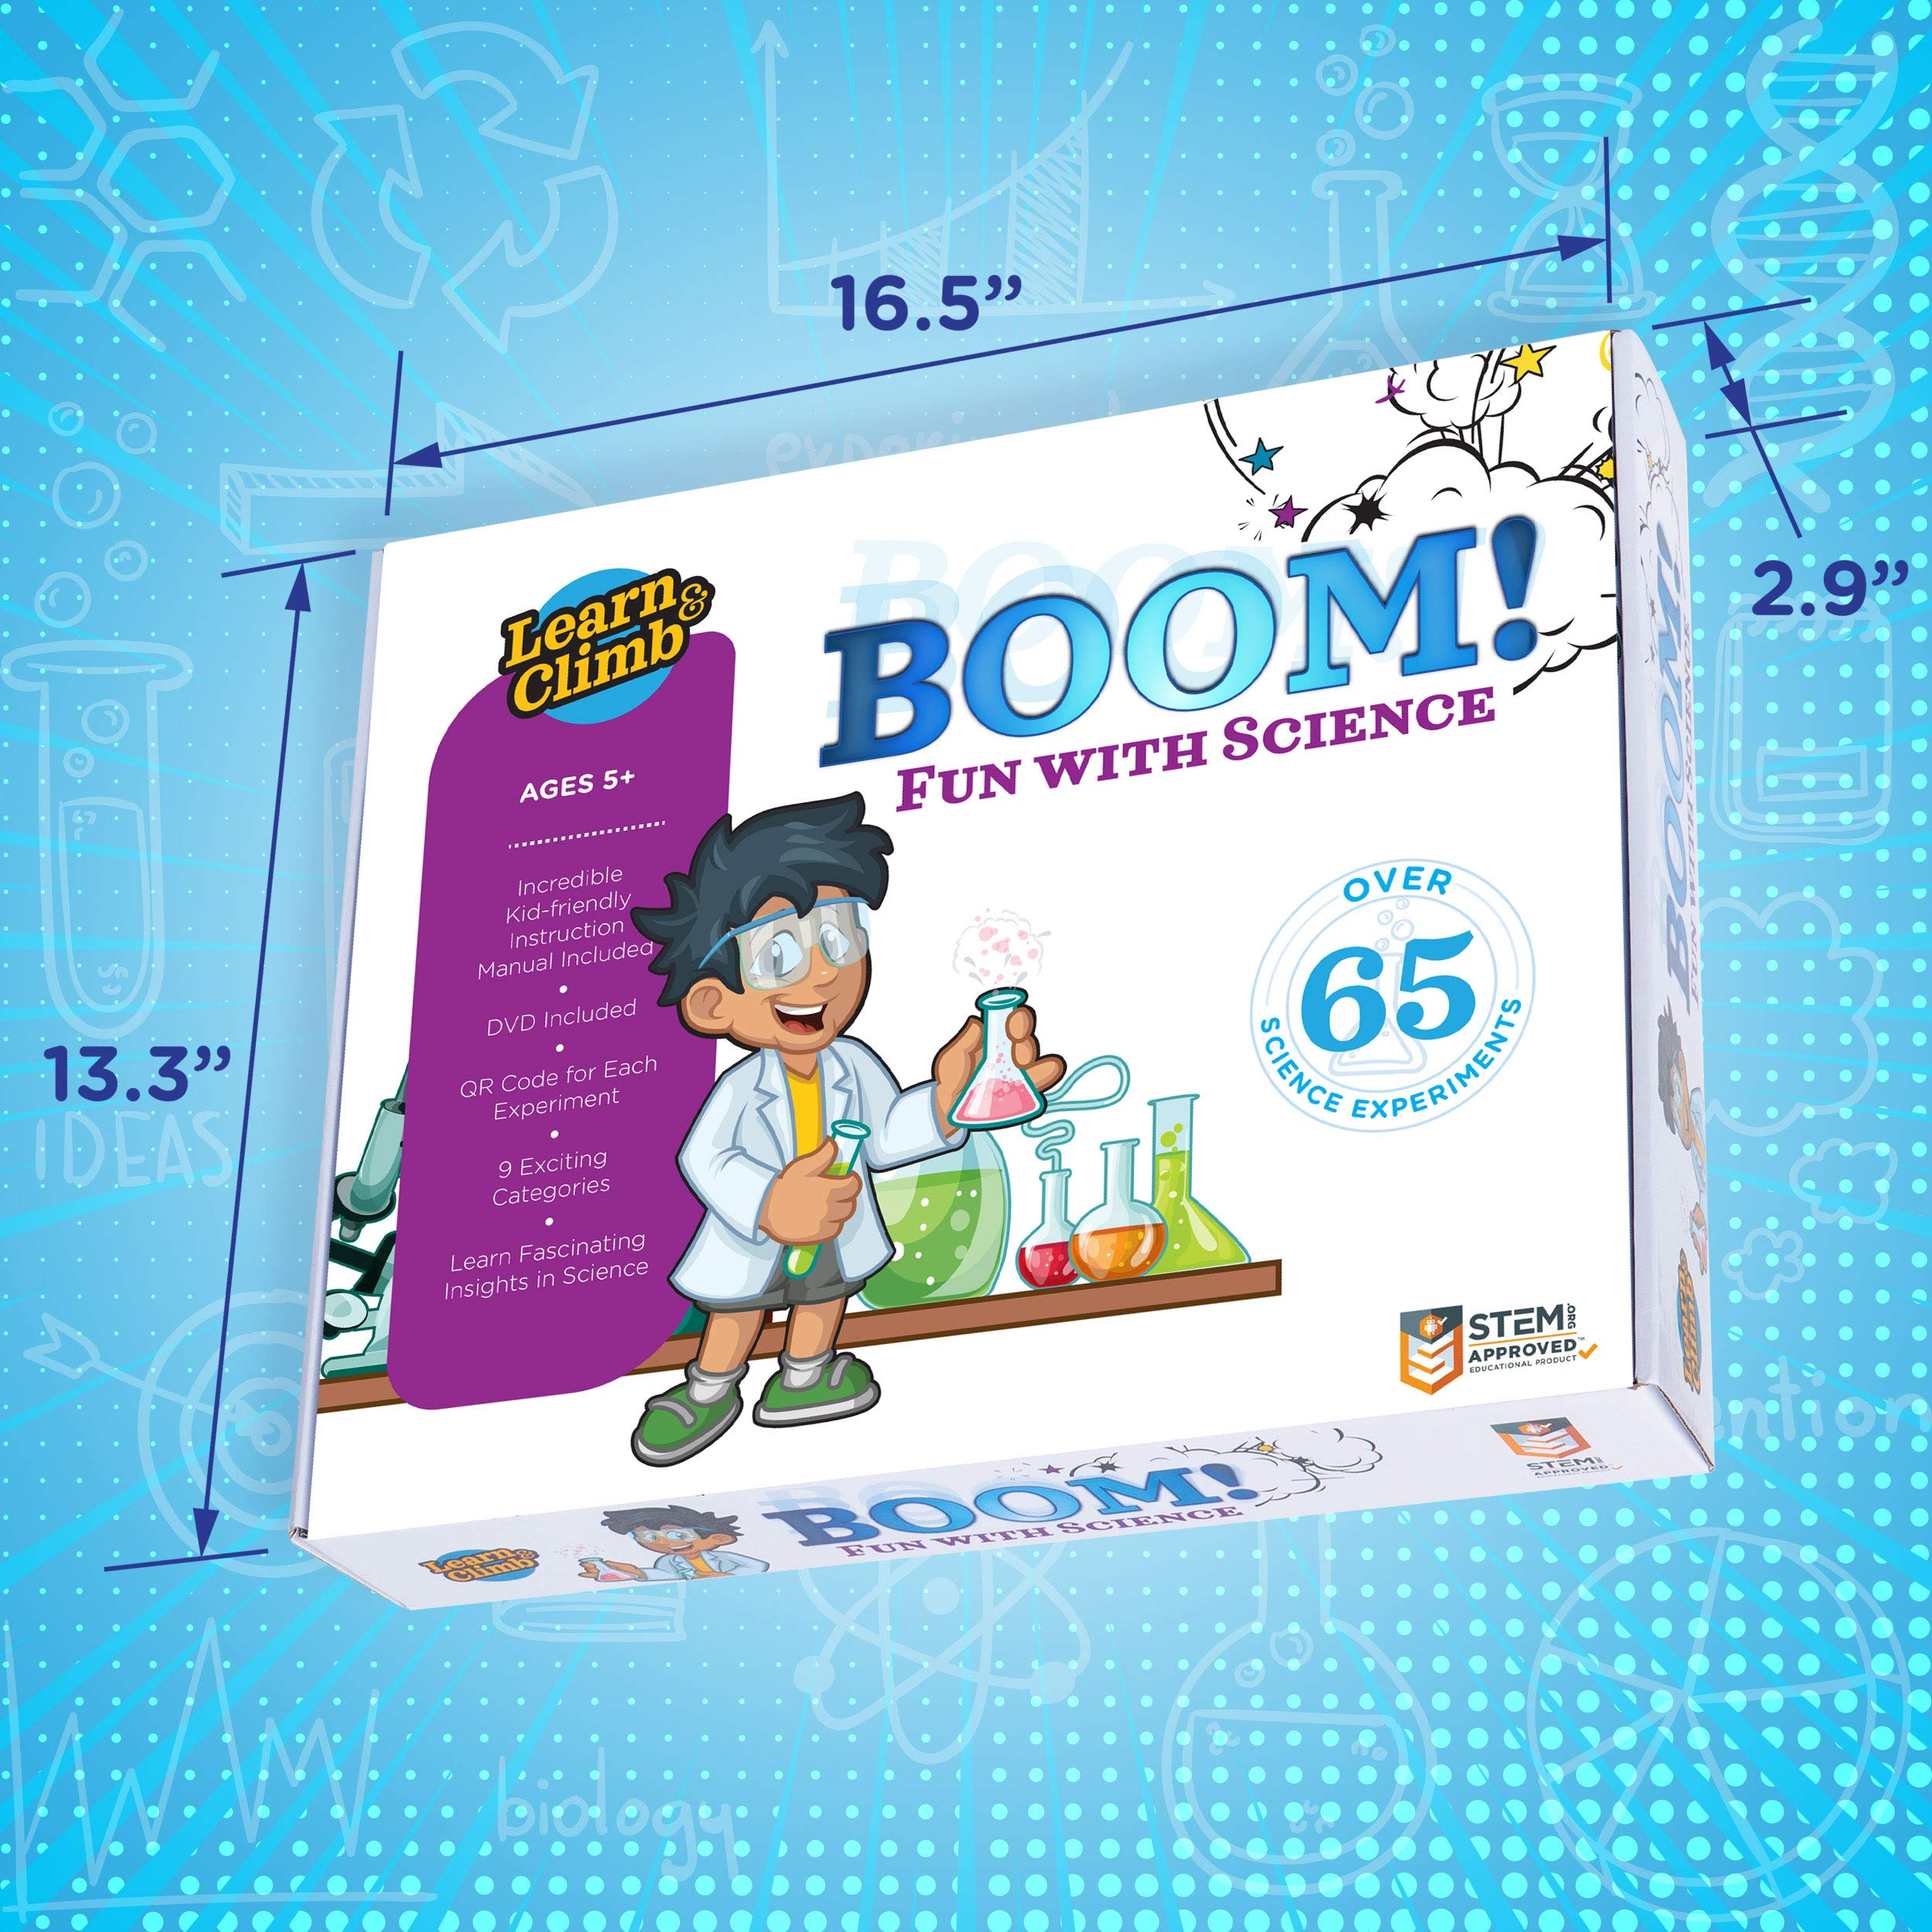 Learn & Climb Kids Science Kit - Over 60 Experiments, Fun with Science! by Learn & Climb (Image #5)